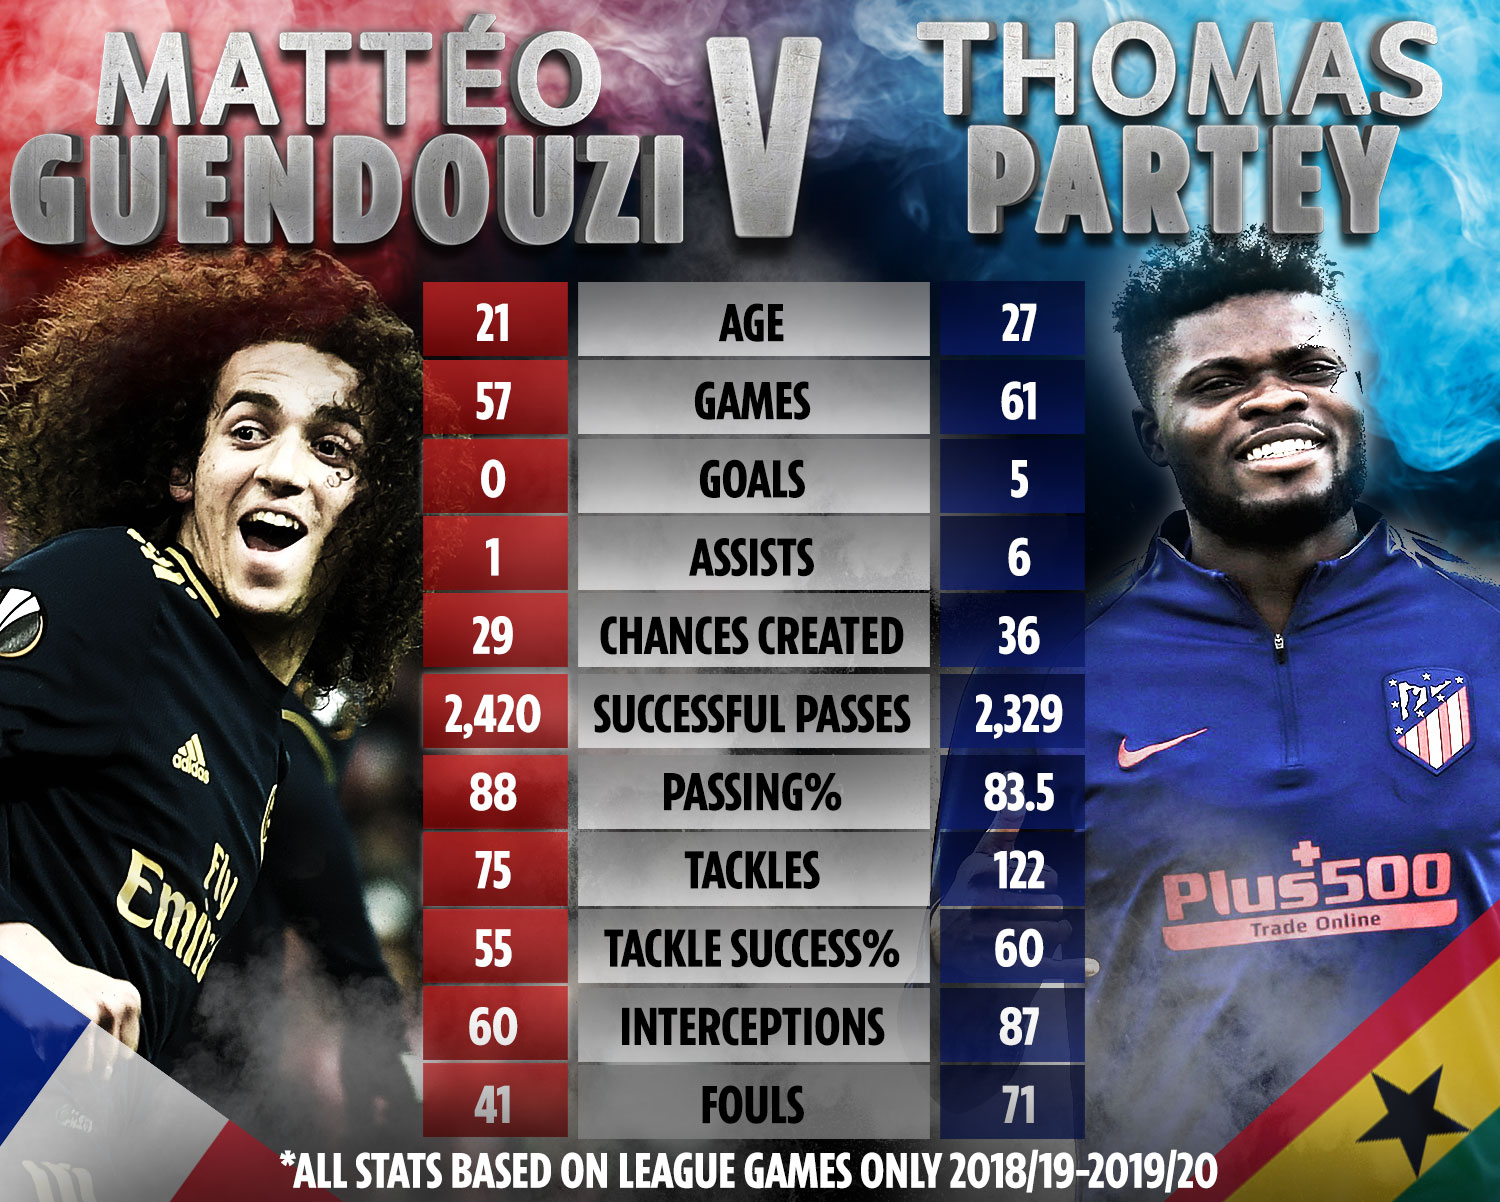 How do Guendouzi and Partey compare statistically?